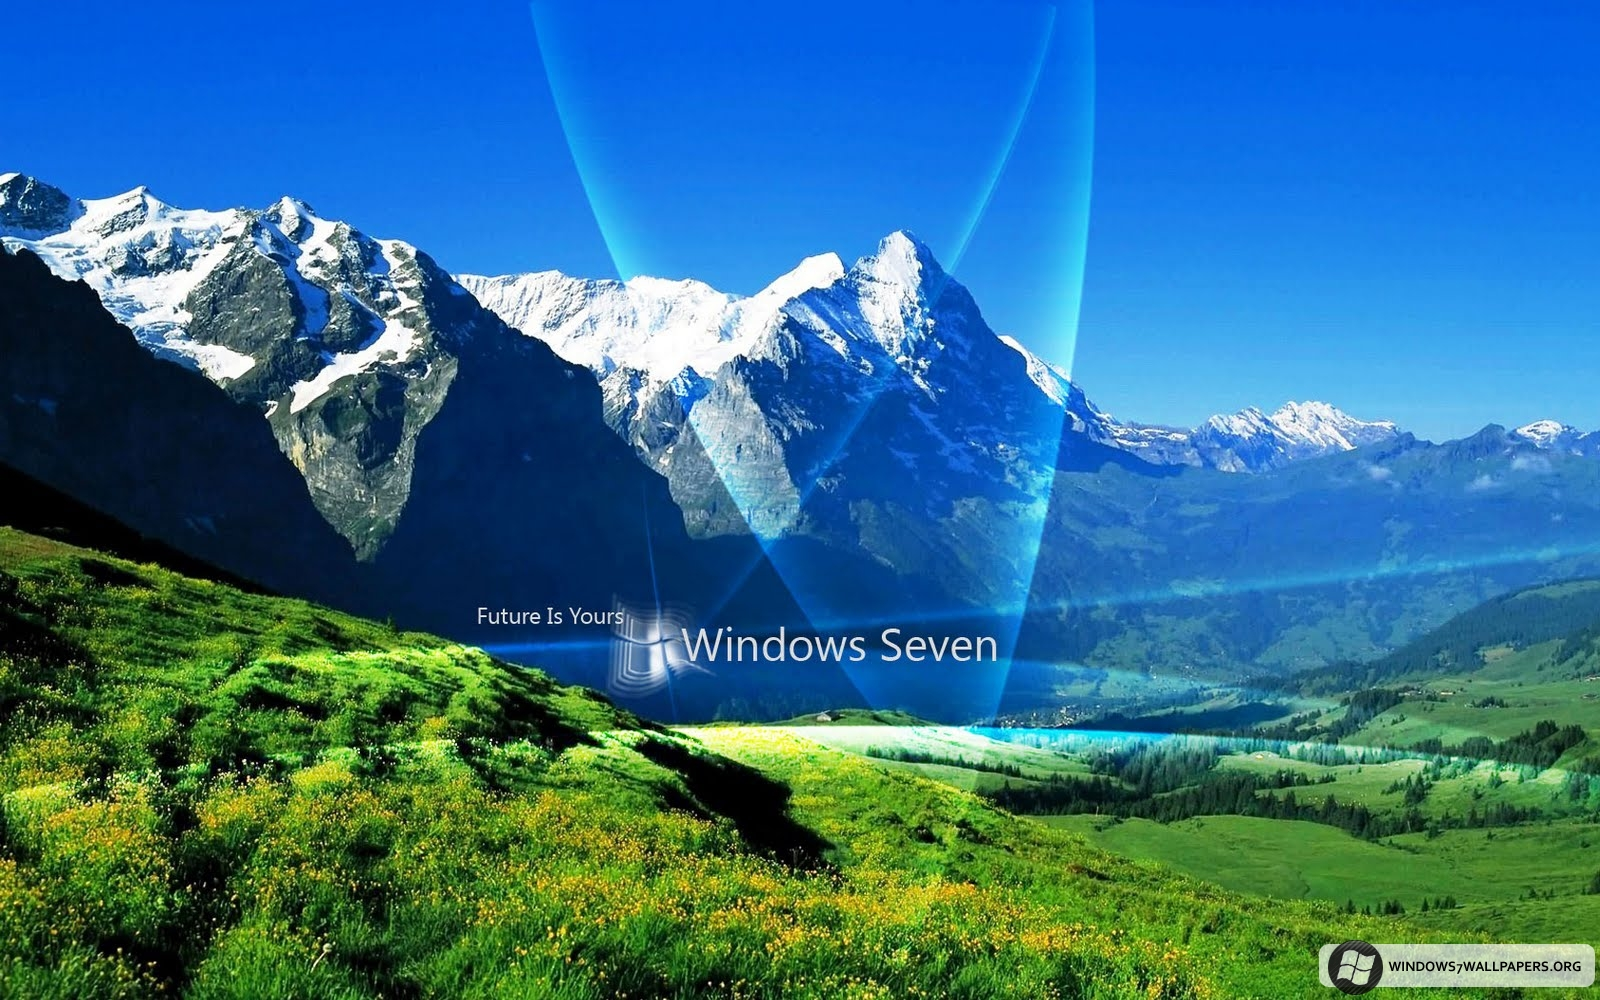 http://3.bp.blogspot.com/-DHYpGyxEirU/Tfzyp5P1TZI/AAAAAAAAIWM/RBsZoRglbsc/s1600/Cool-natural-windows7-seven-desktop-wallpaper-1680x1050.jpg